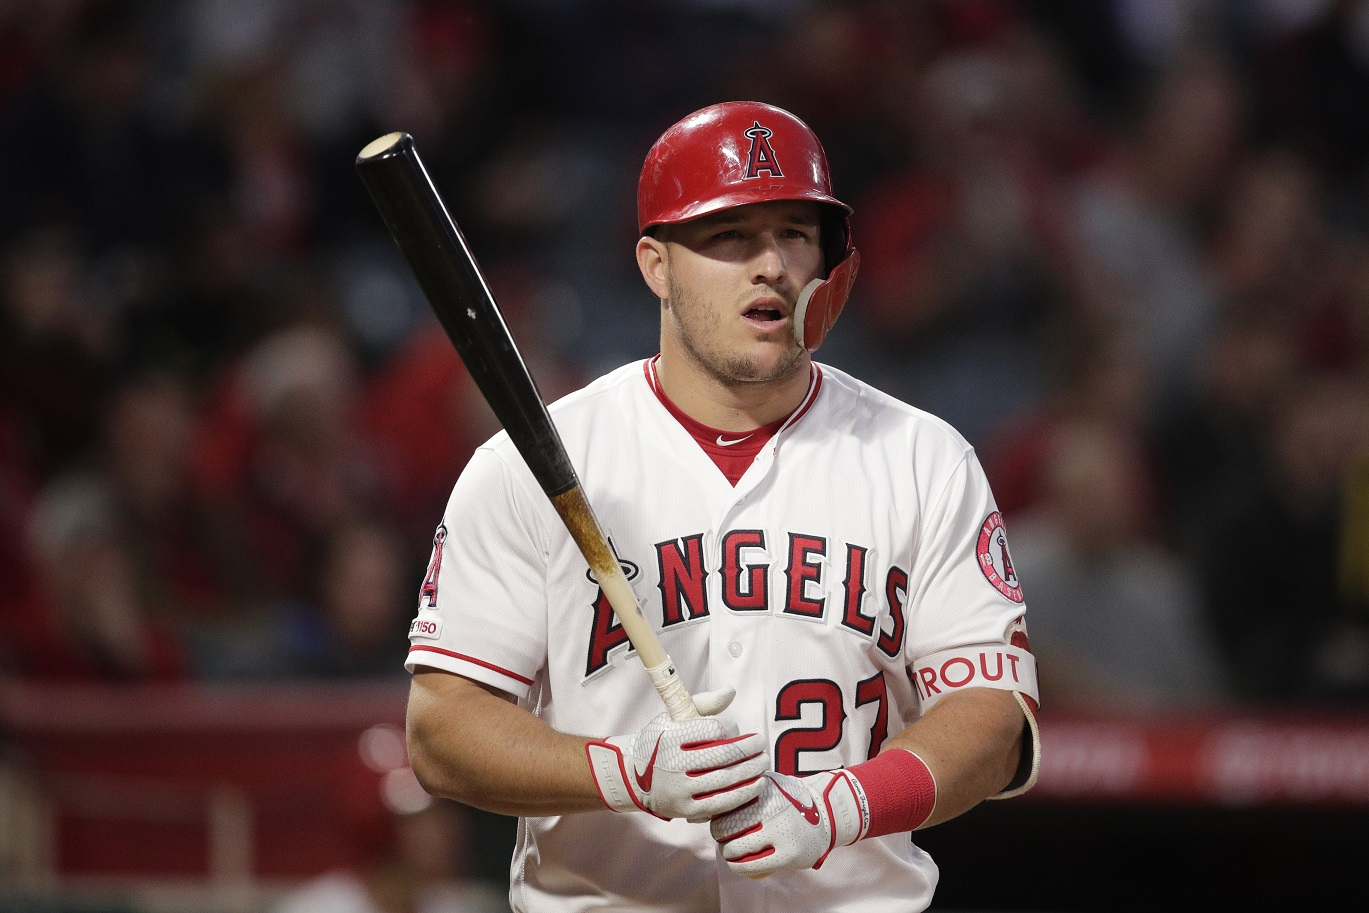 Trout could be out tonight, as Brewers wrap up series with Angels